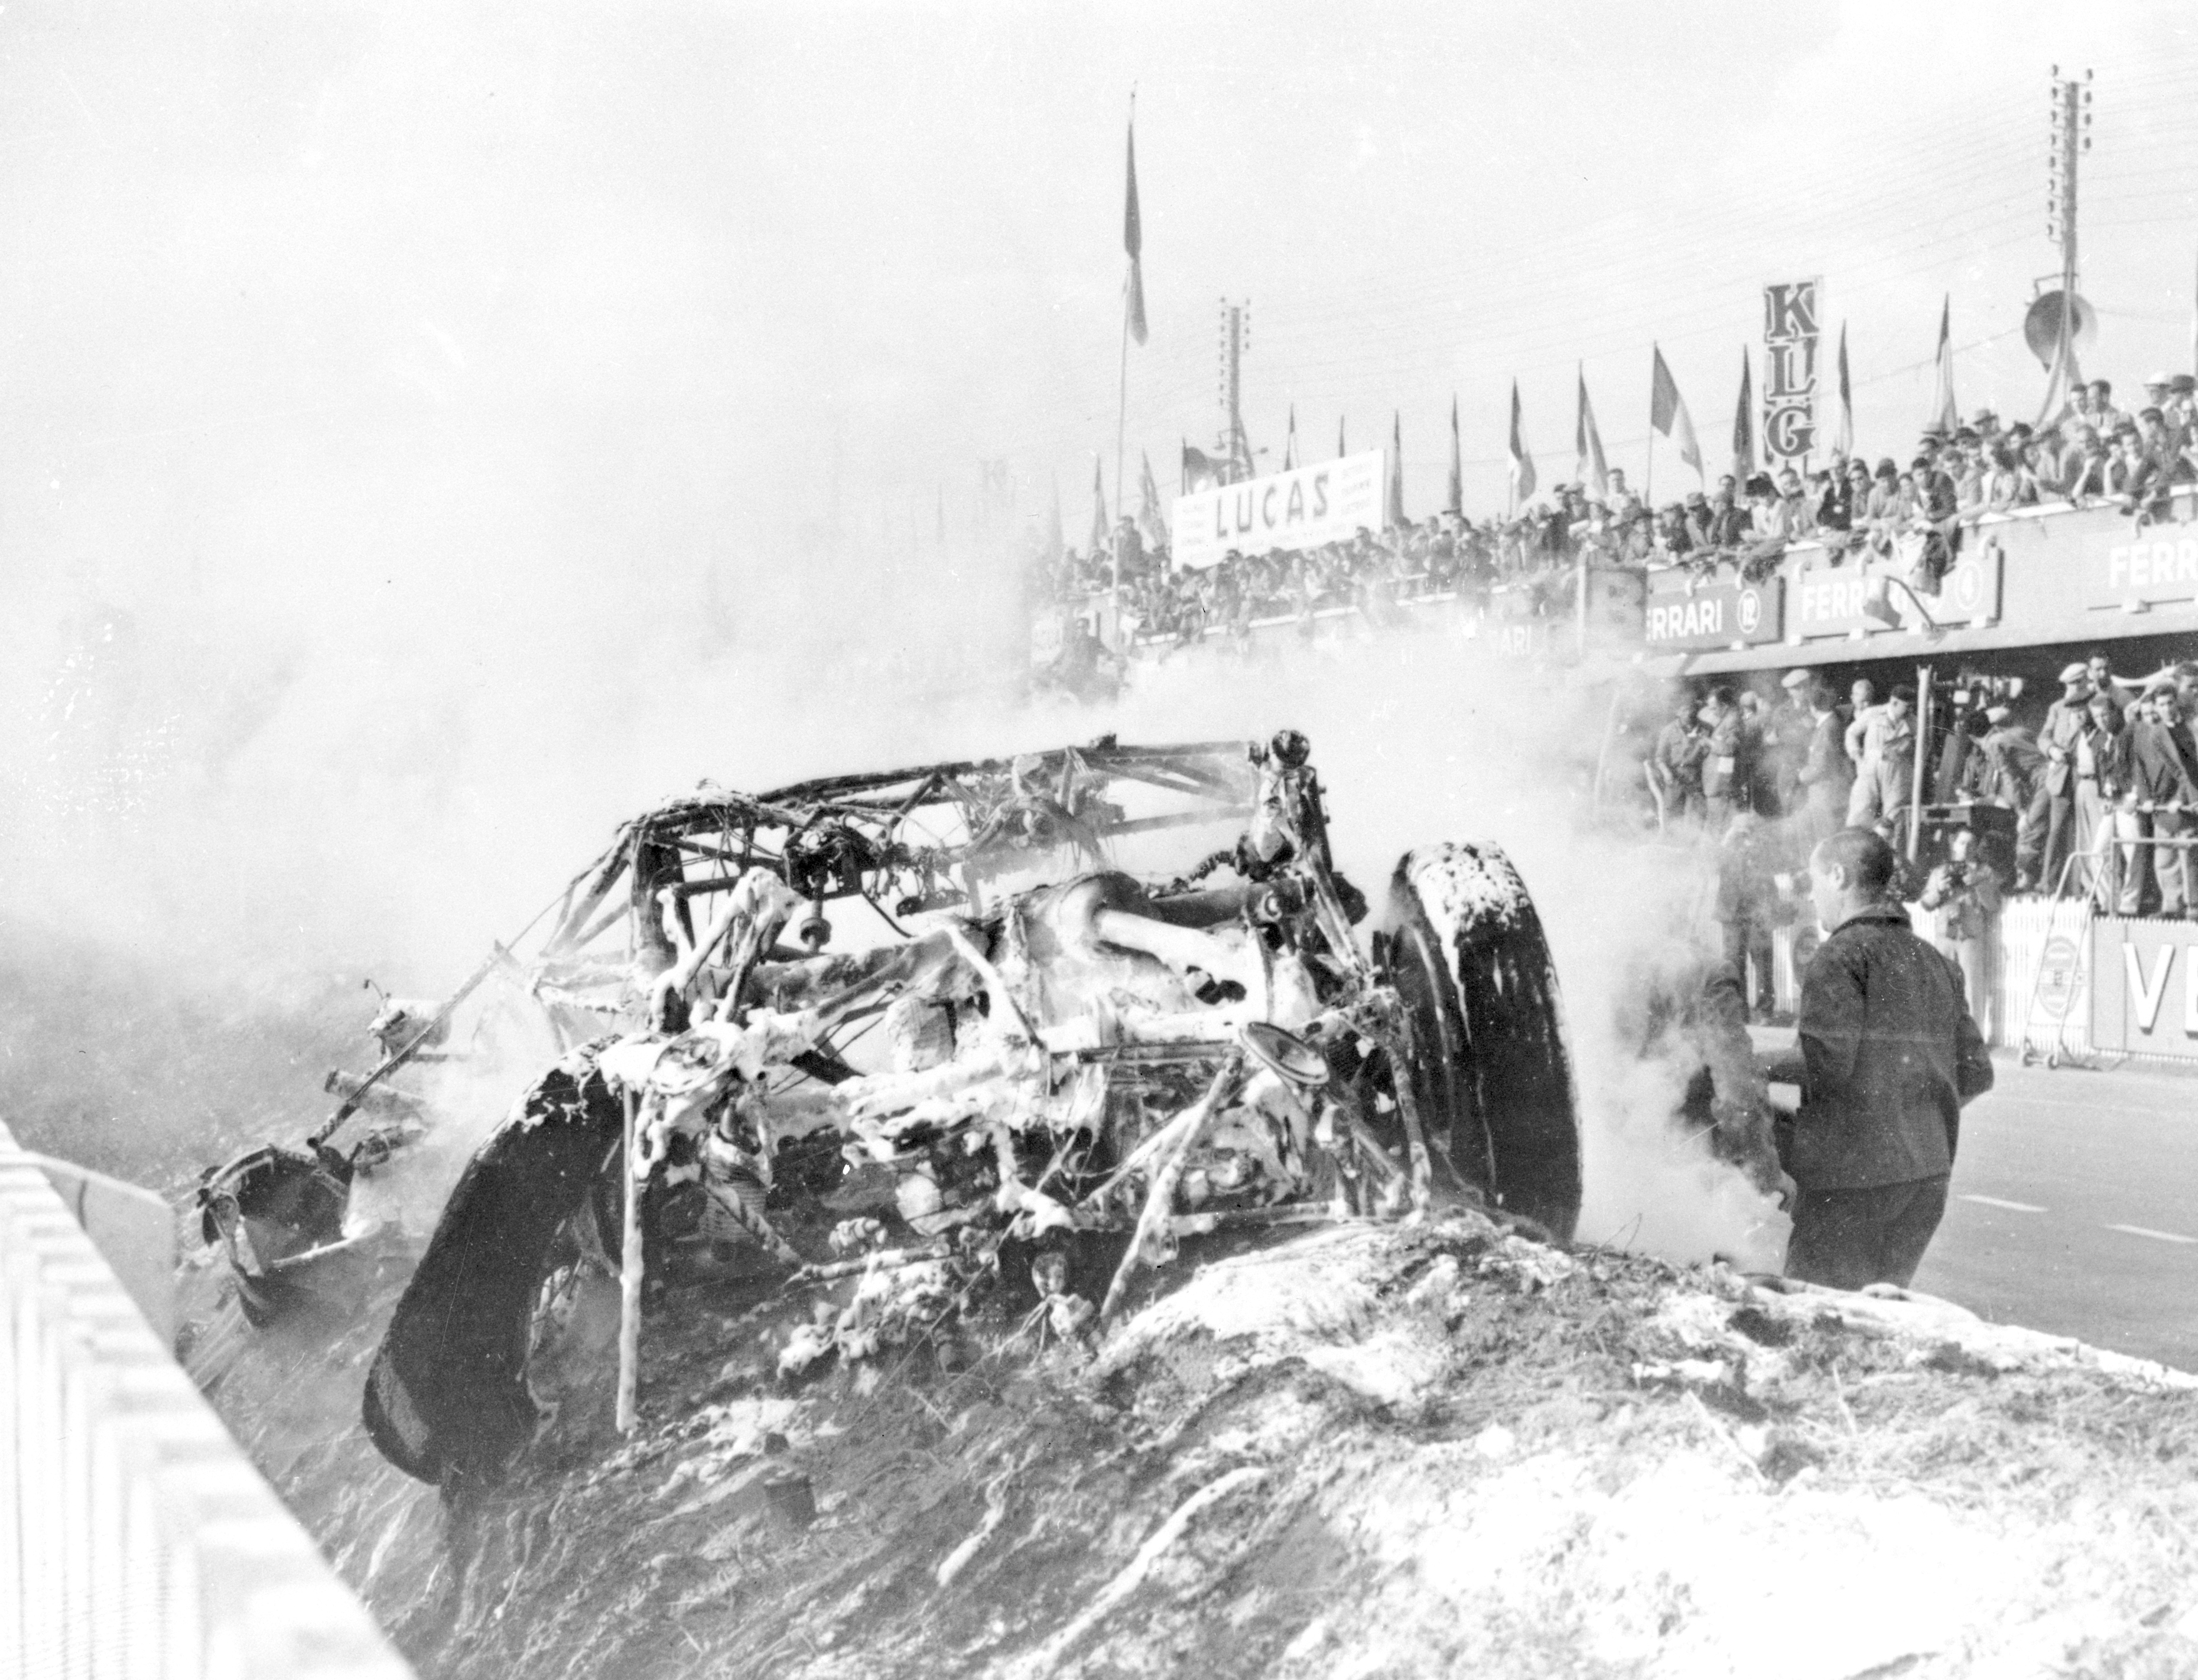 Wreckage at Le Mans in 1955